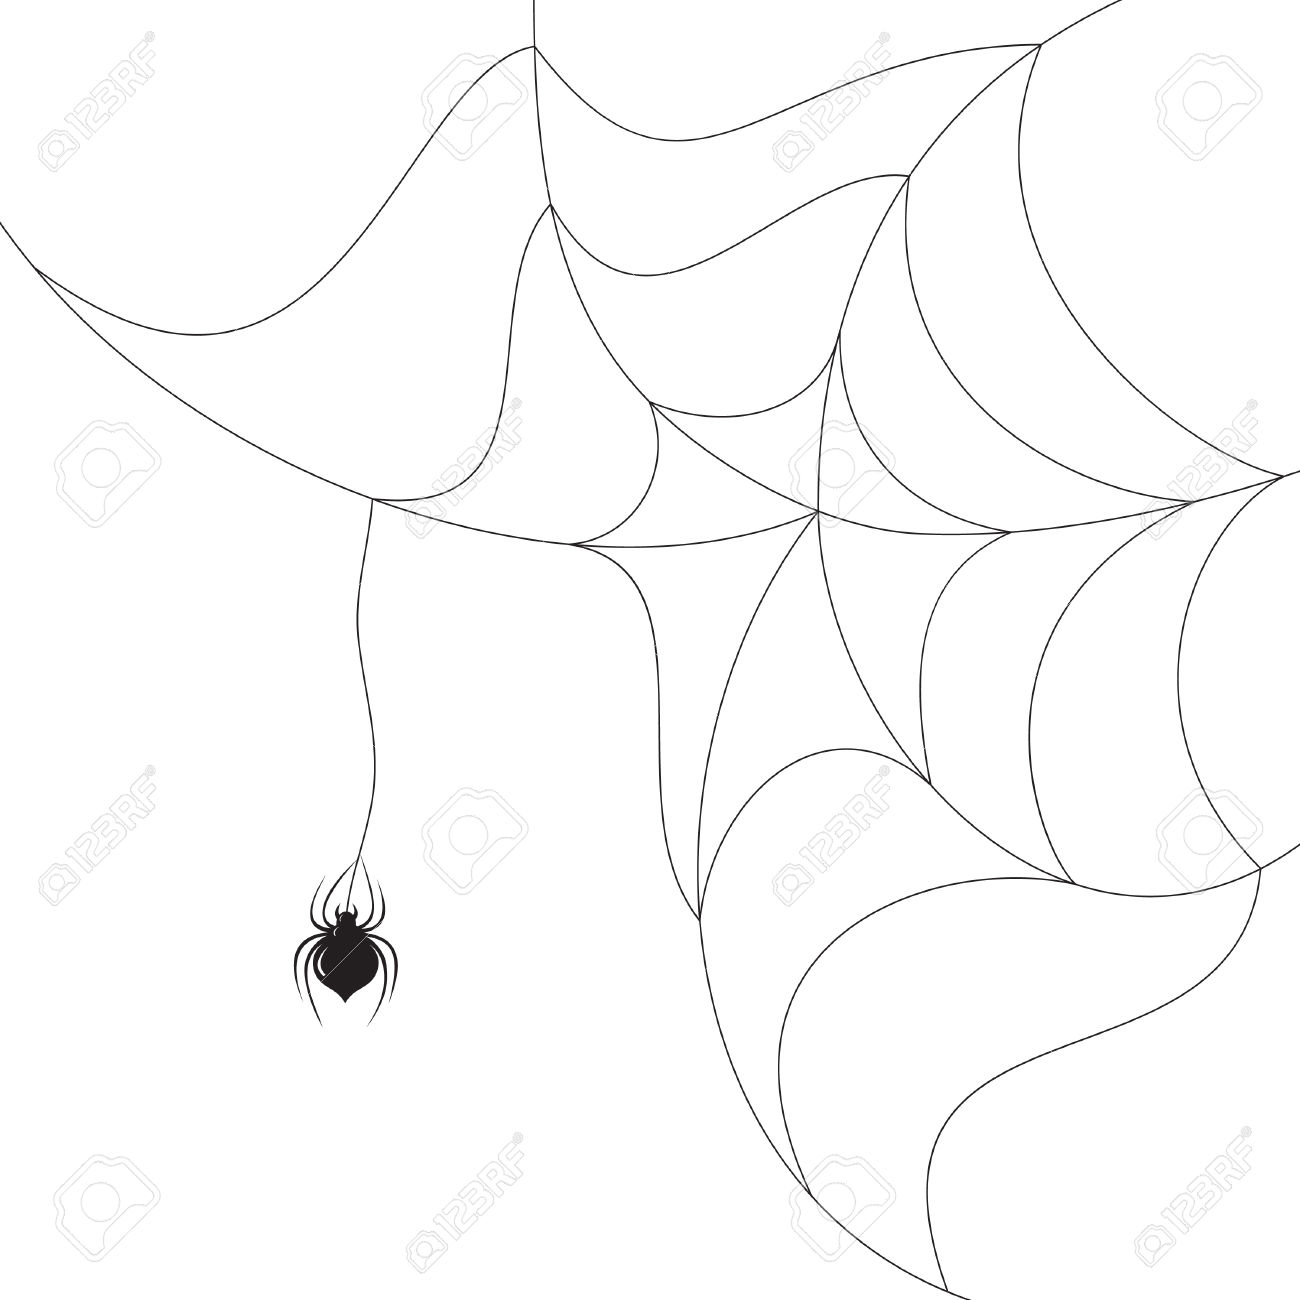 Spider Spinning A Web On White Background Royalty Free Cliparts.